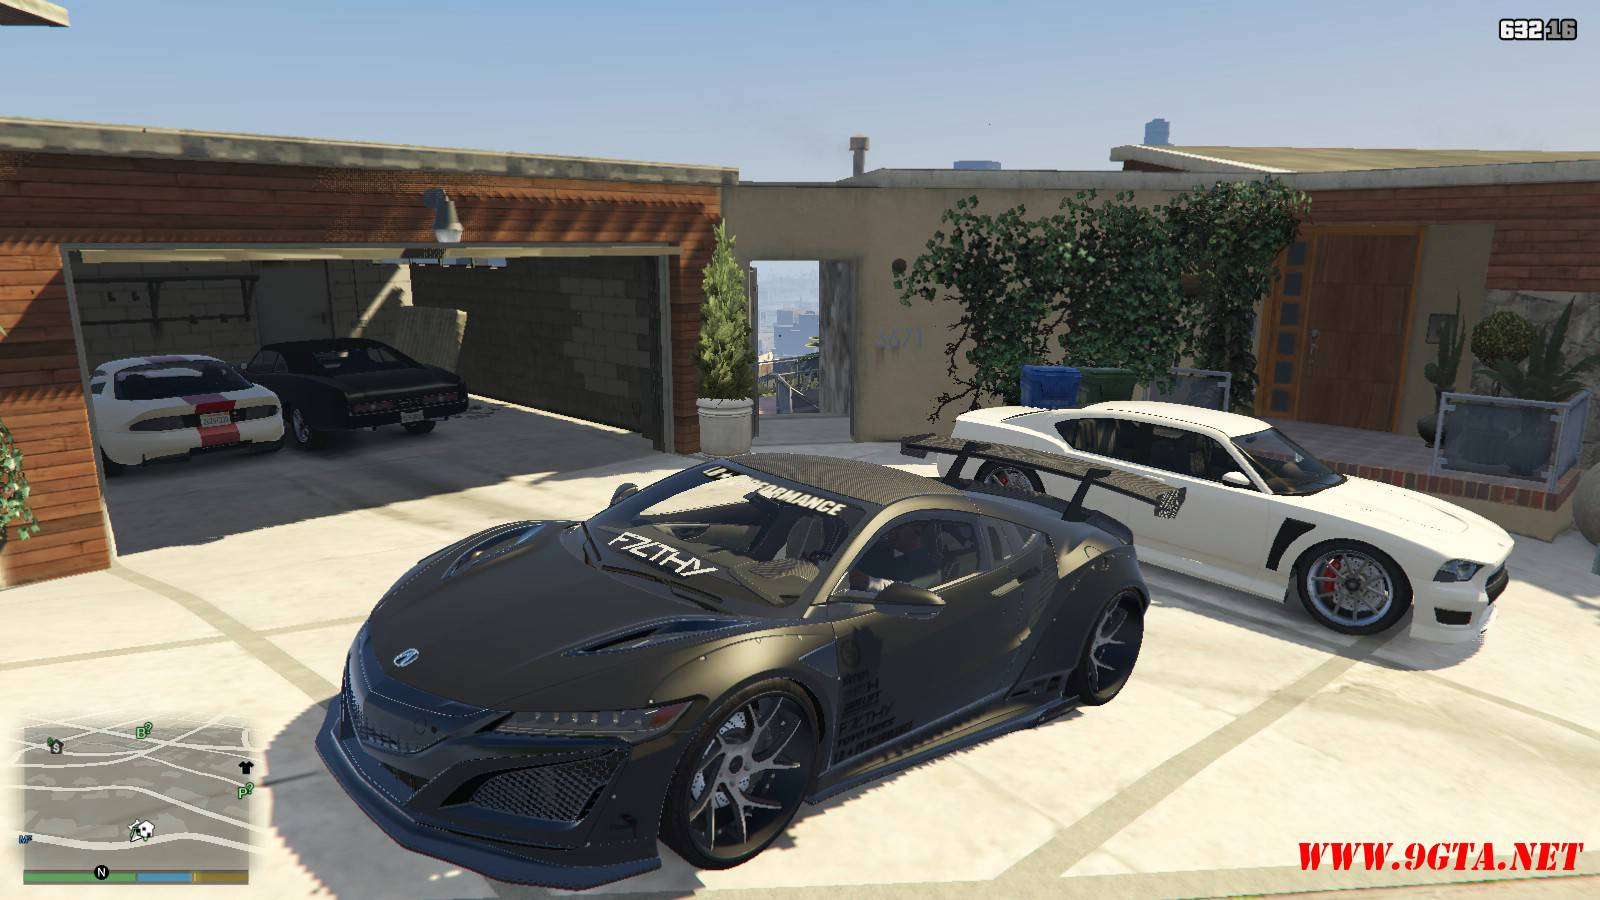 Acura NSX Liberty Walk Mod For GTA5 (1)